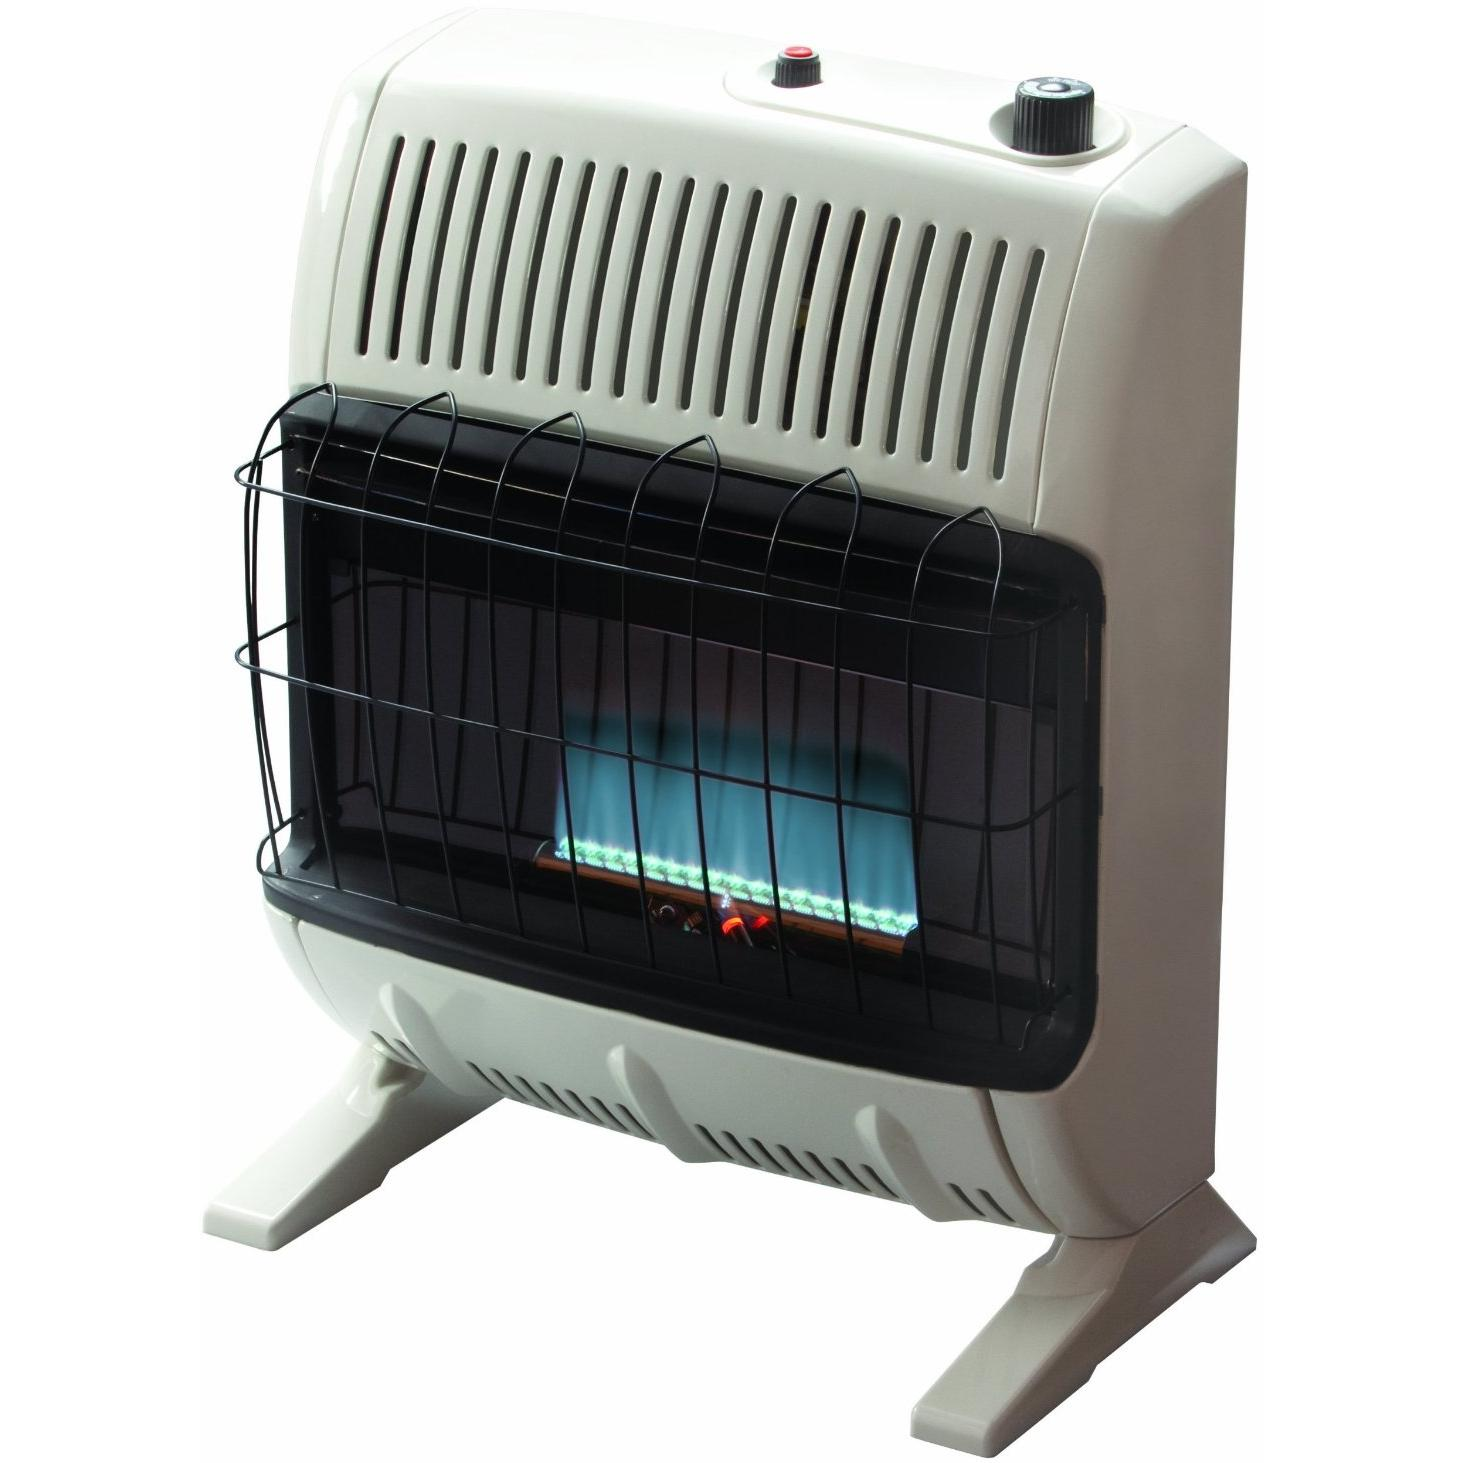 Heatstar 20,000 Btu Blue Flame Vent Free Propane Gas Space Heater at Sears.com